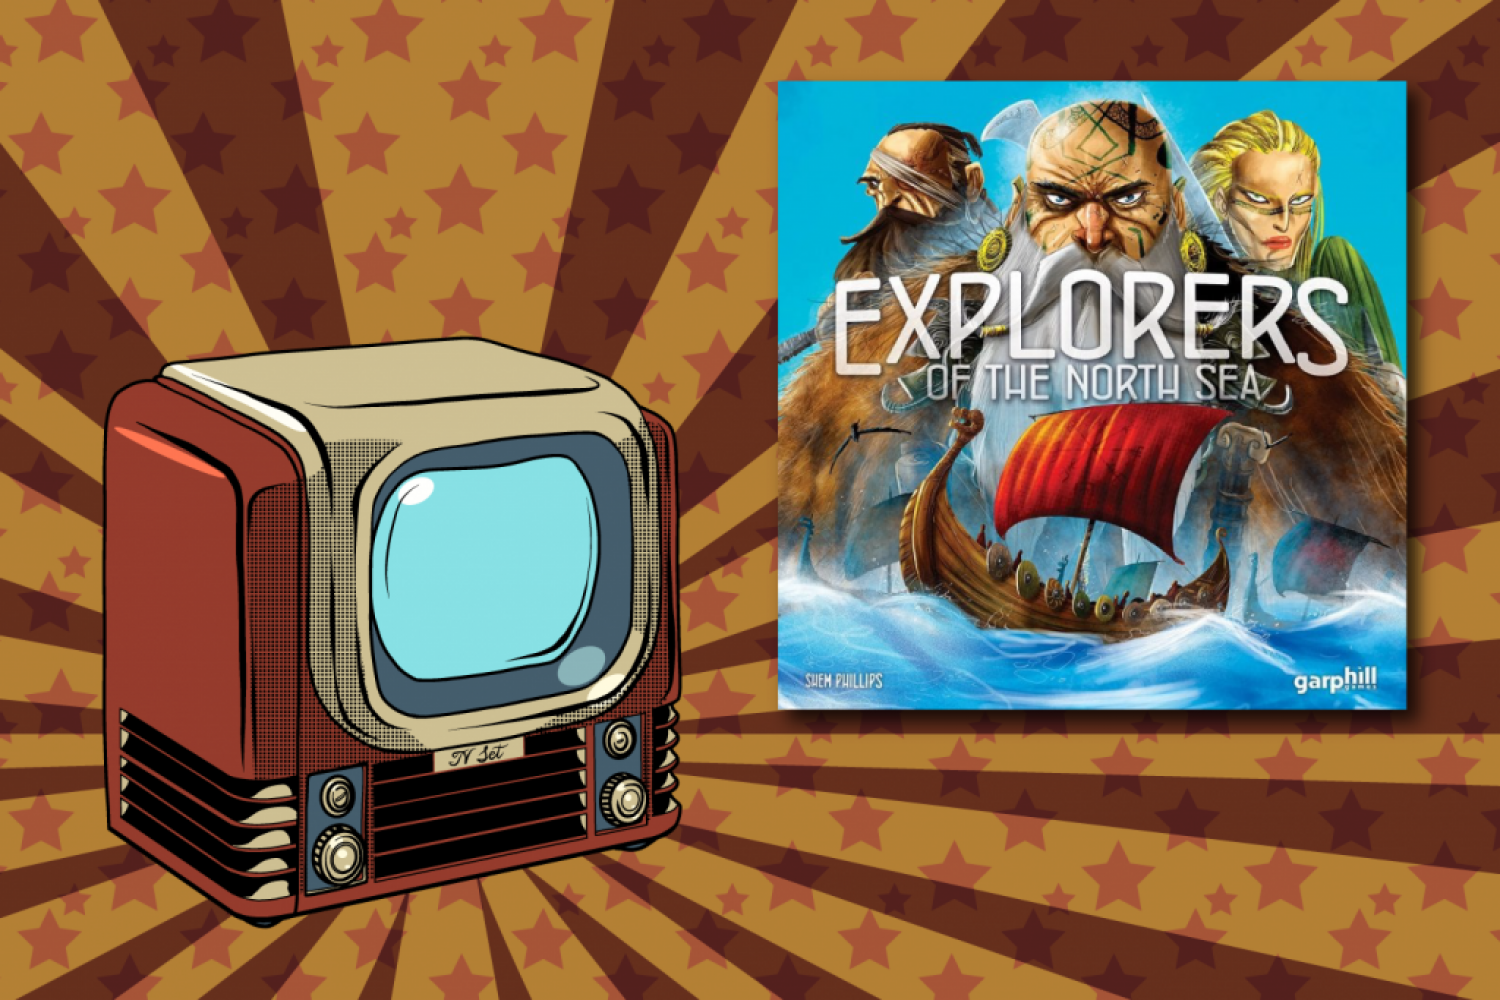 Explorers-of-the-North-Sea-Unboxing-Video